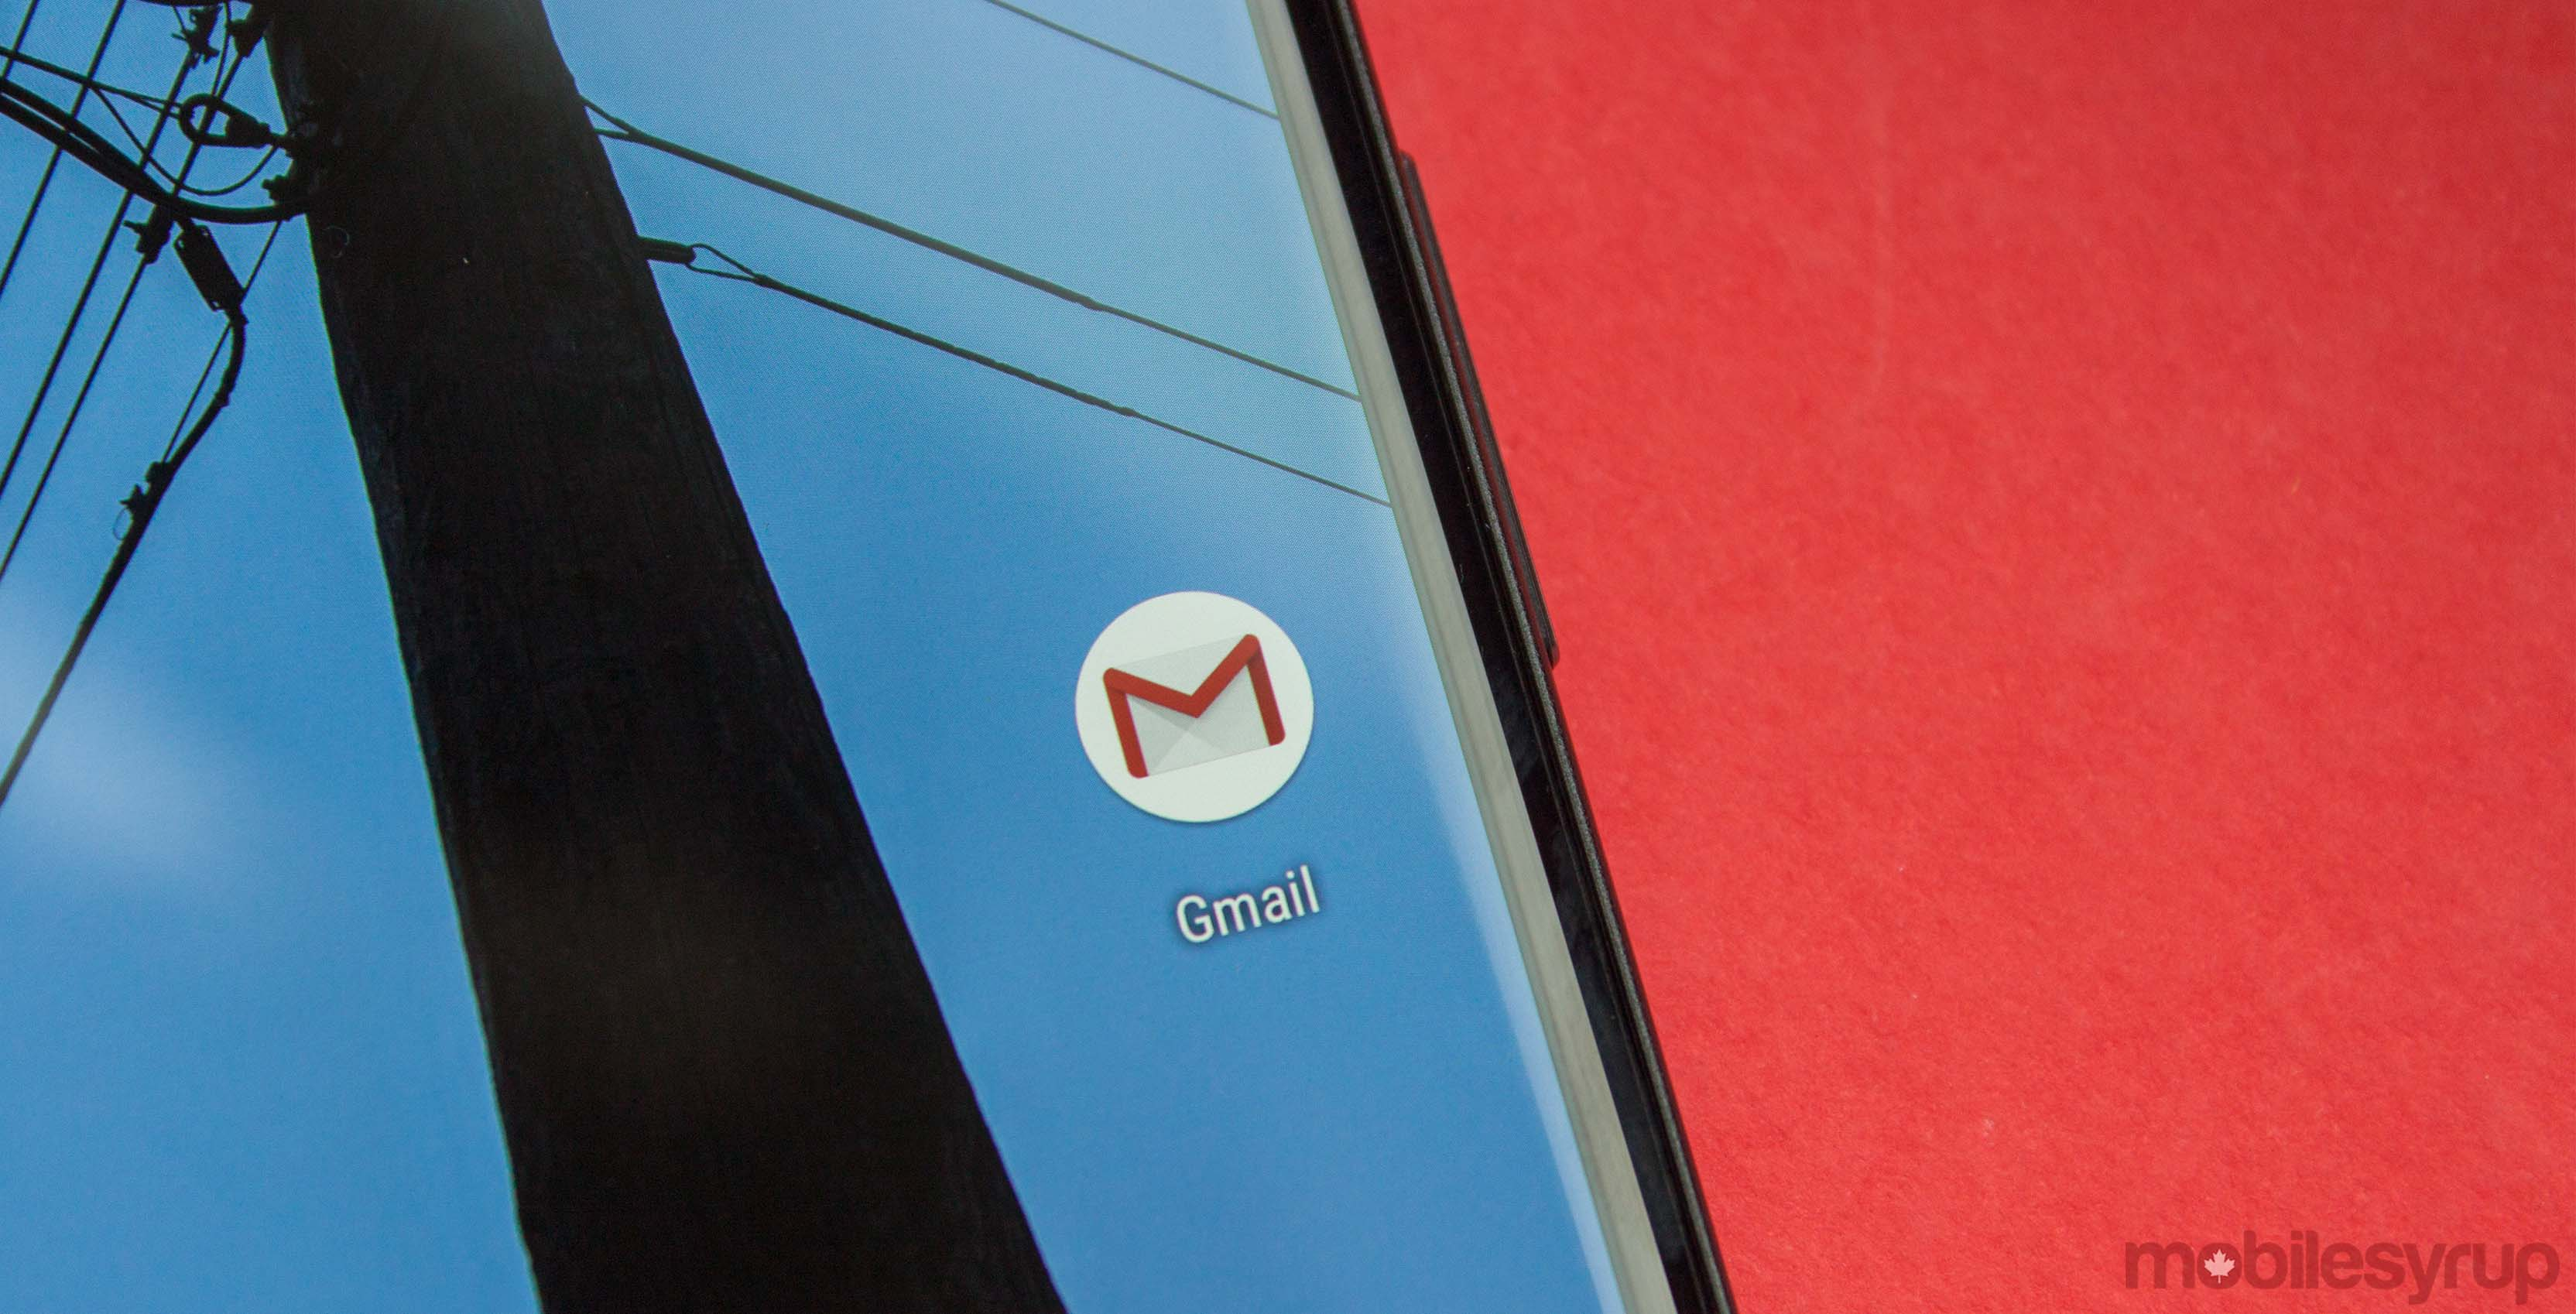 SwiftKey to lose access to Gmail unless it complies with